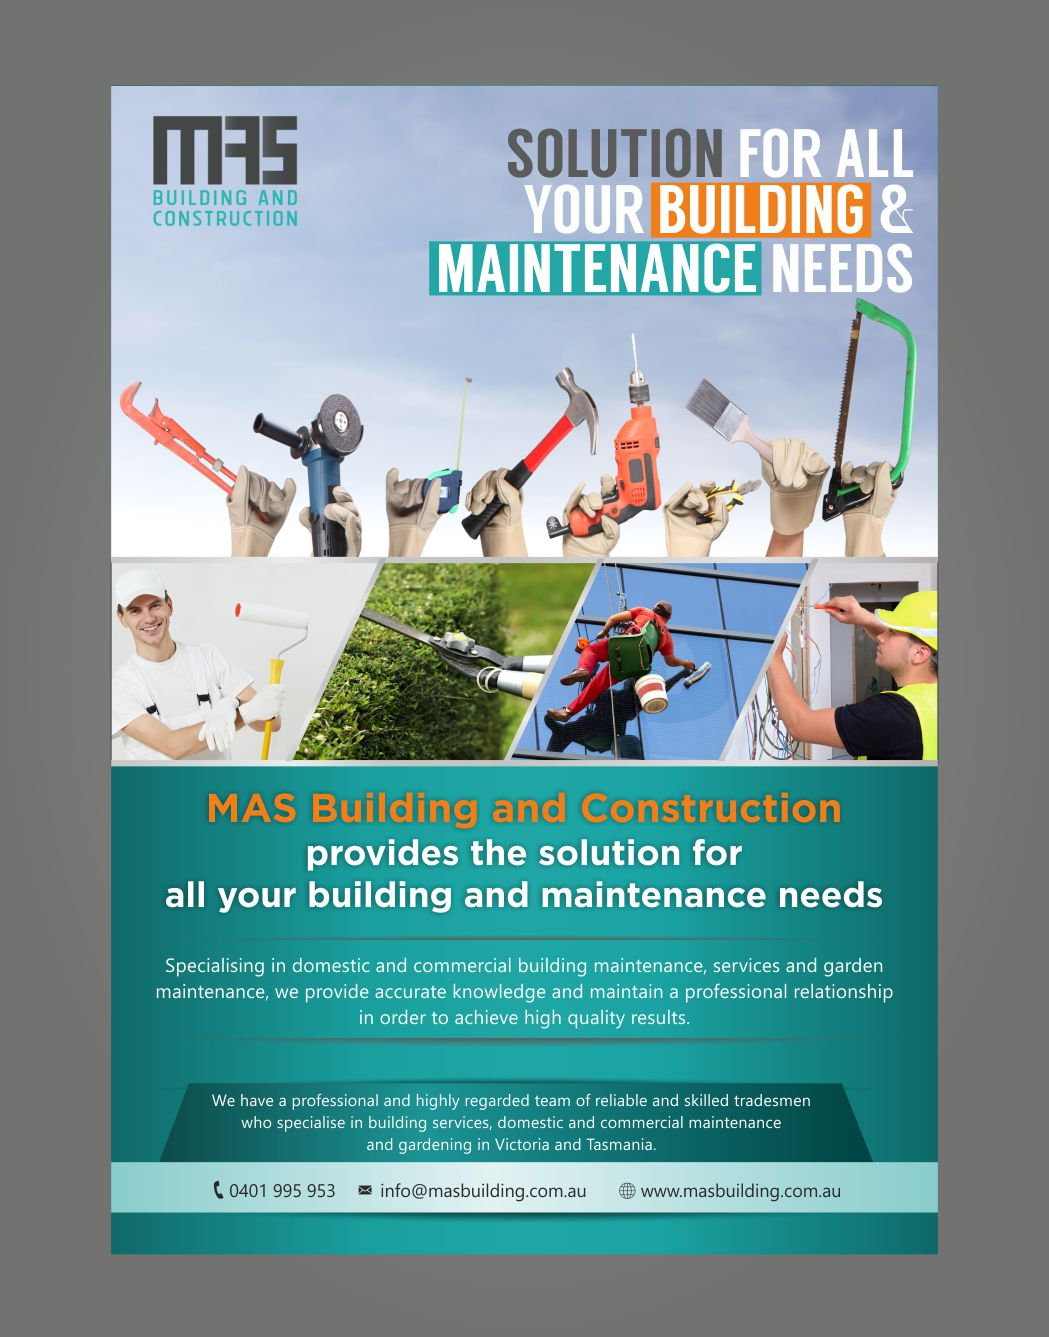 Building Maintenance Companies : Modern personable flyer design for mas building and